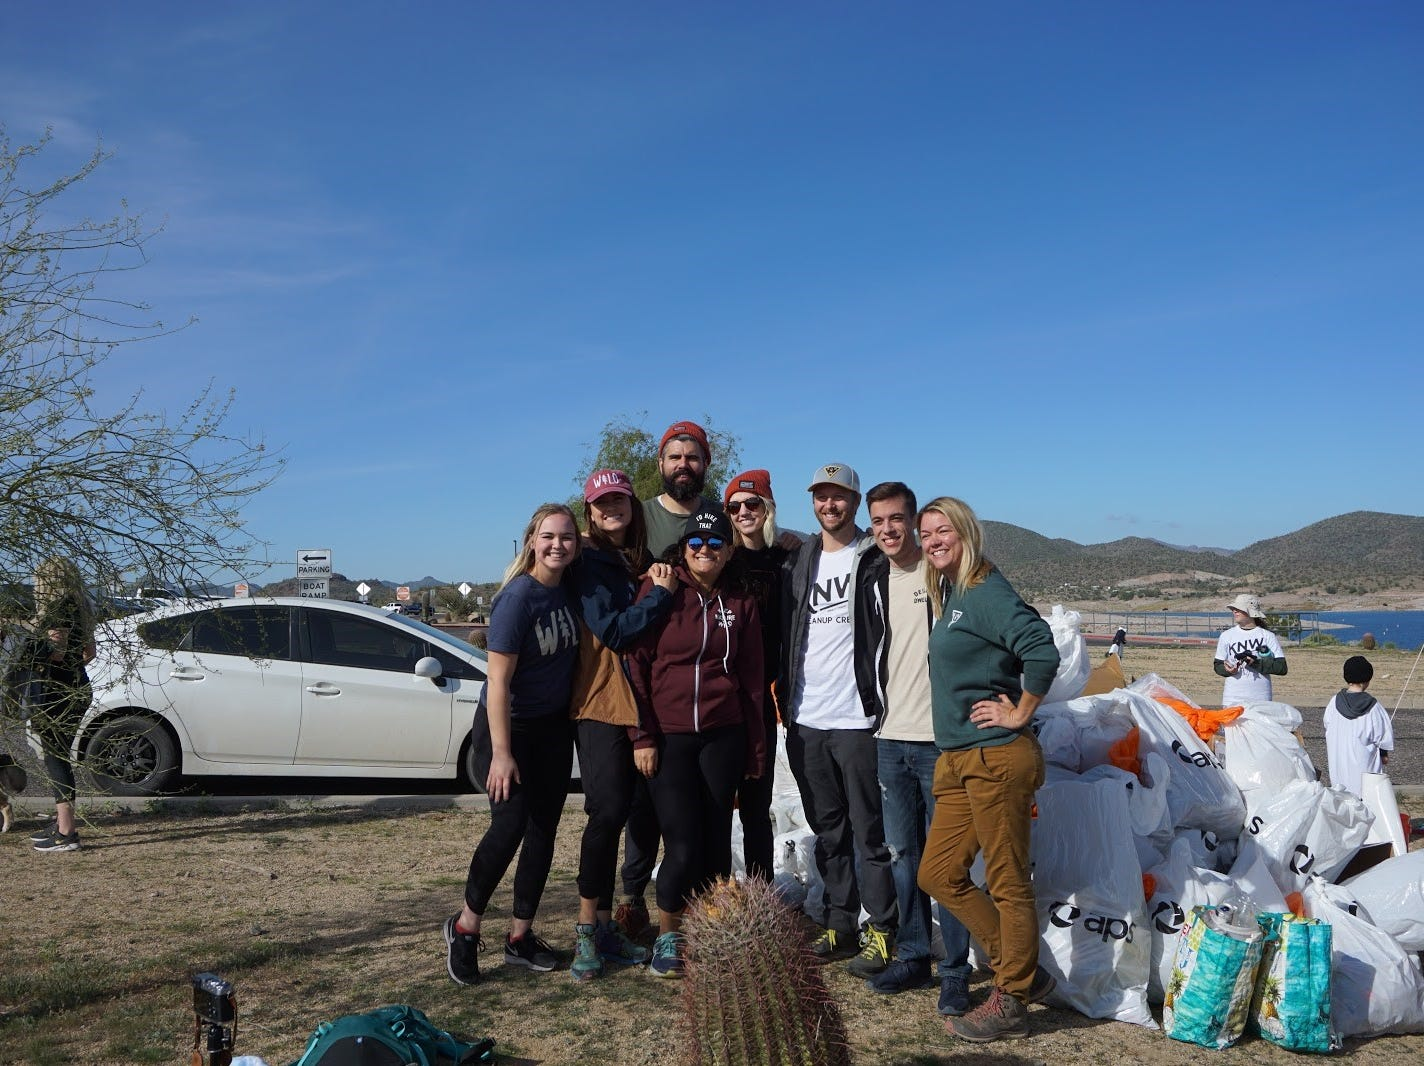 (Left to Right) Keep Nature Wild staff Gillian Coyle, Cassie Jarman, Sean Huntington, Shawni Huntington, Cameron Jarman, Blake Curry, Melissa Wright and Joanna Fiorentino pose for a photo with the pile of trash collected by volunteers at a cleanup day at Lake Pleasant on Nov. 23, 2018.